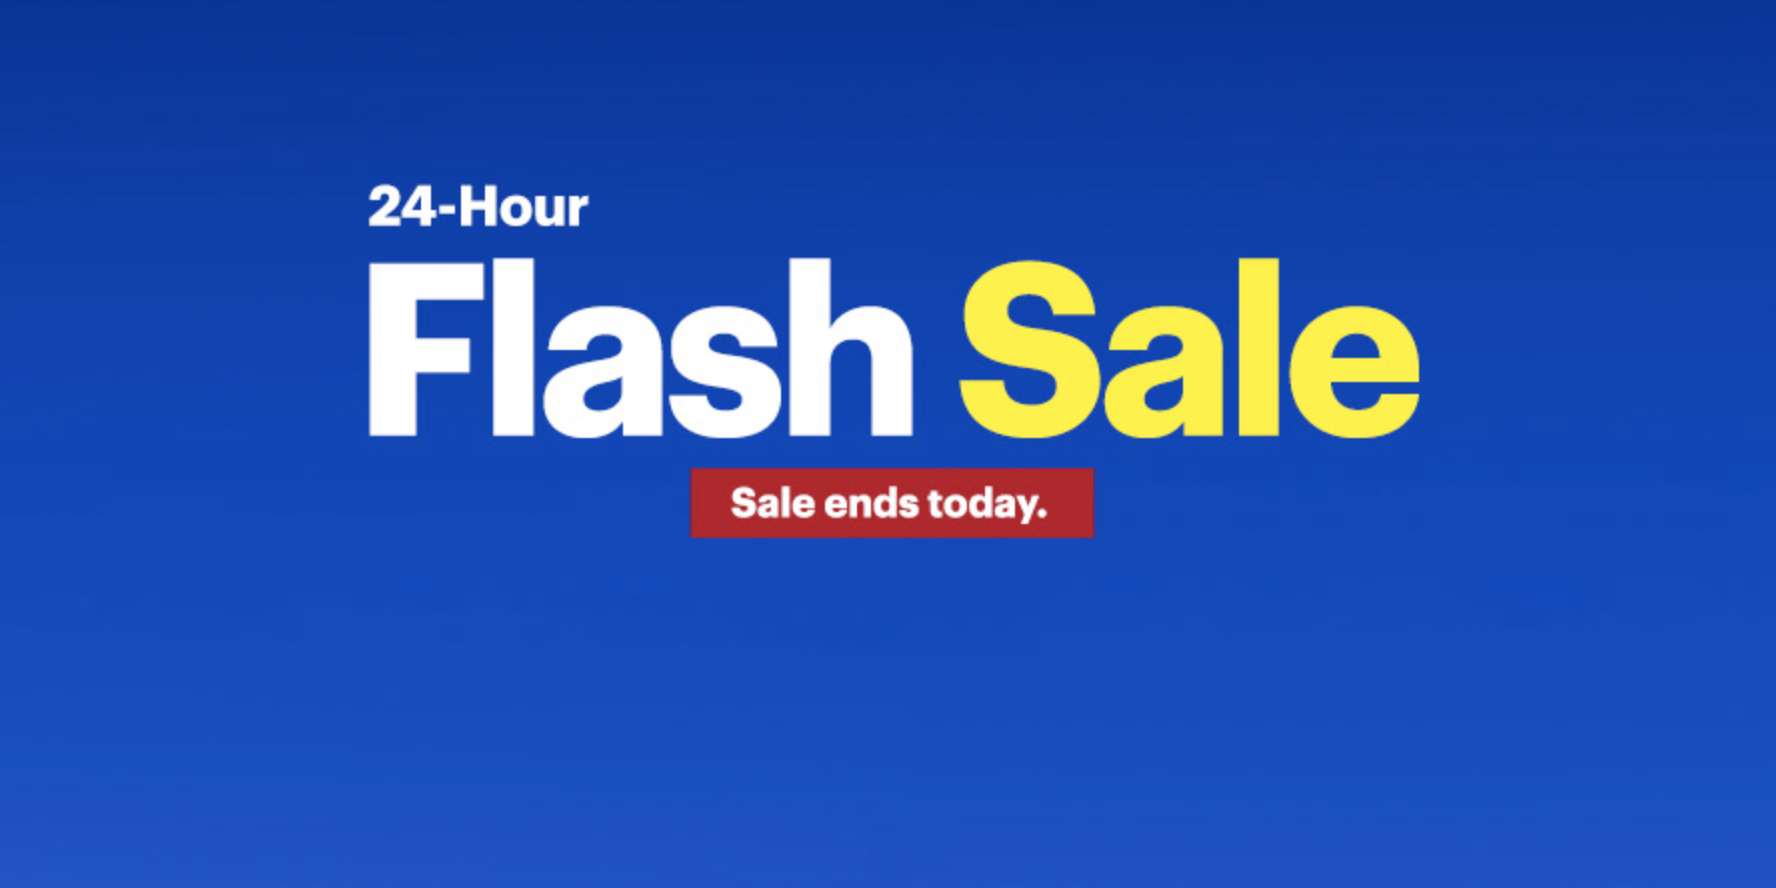 Best Buy Flash Sale takes up to $300 off MacBook Pro, $150 off iPad Pro, more for 24-hours